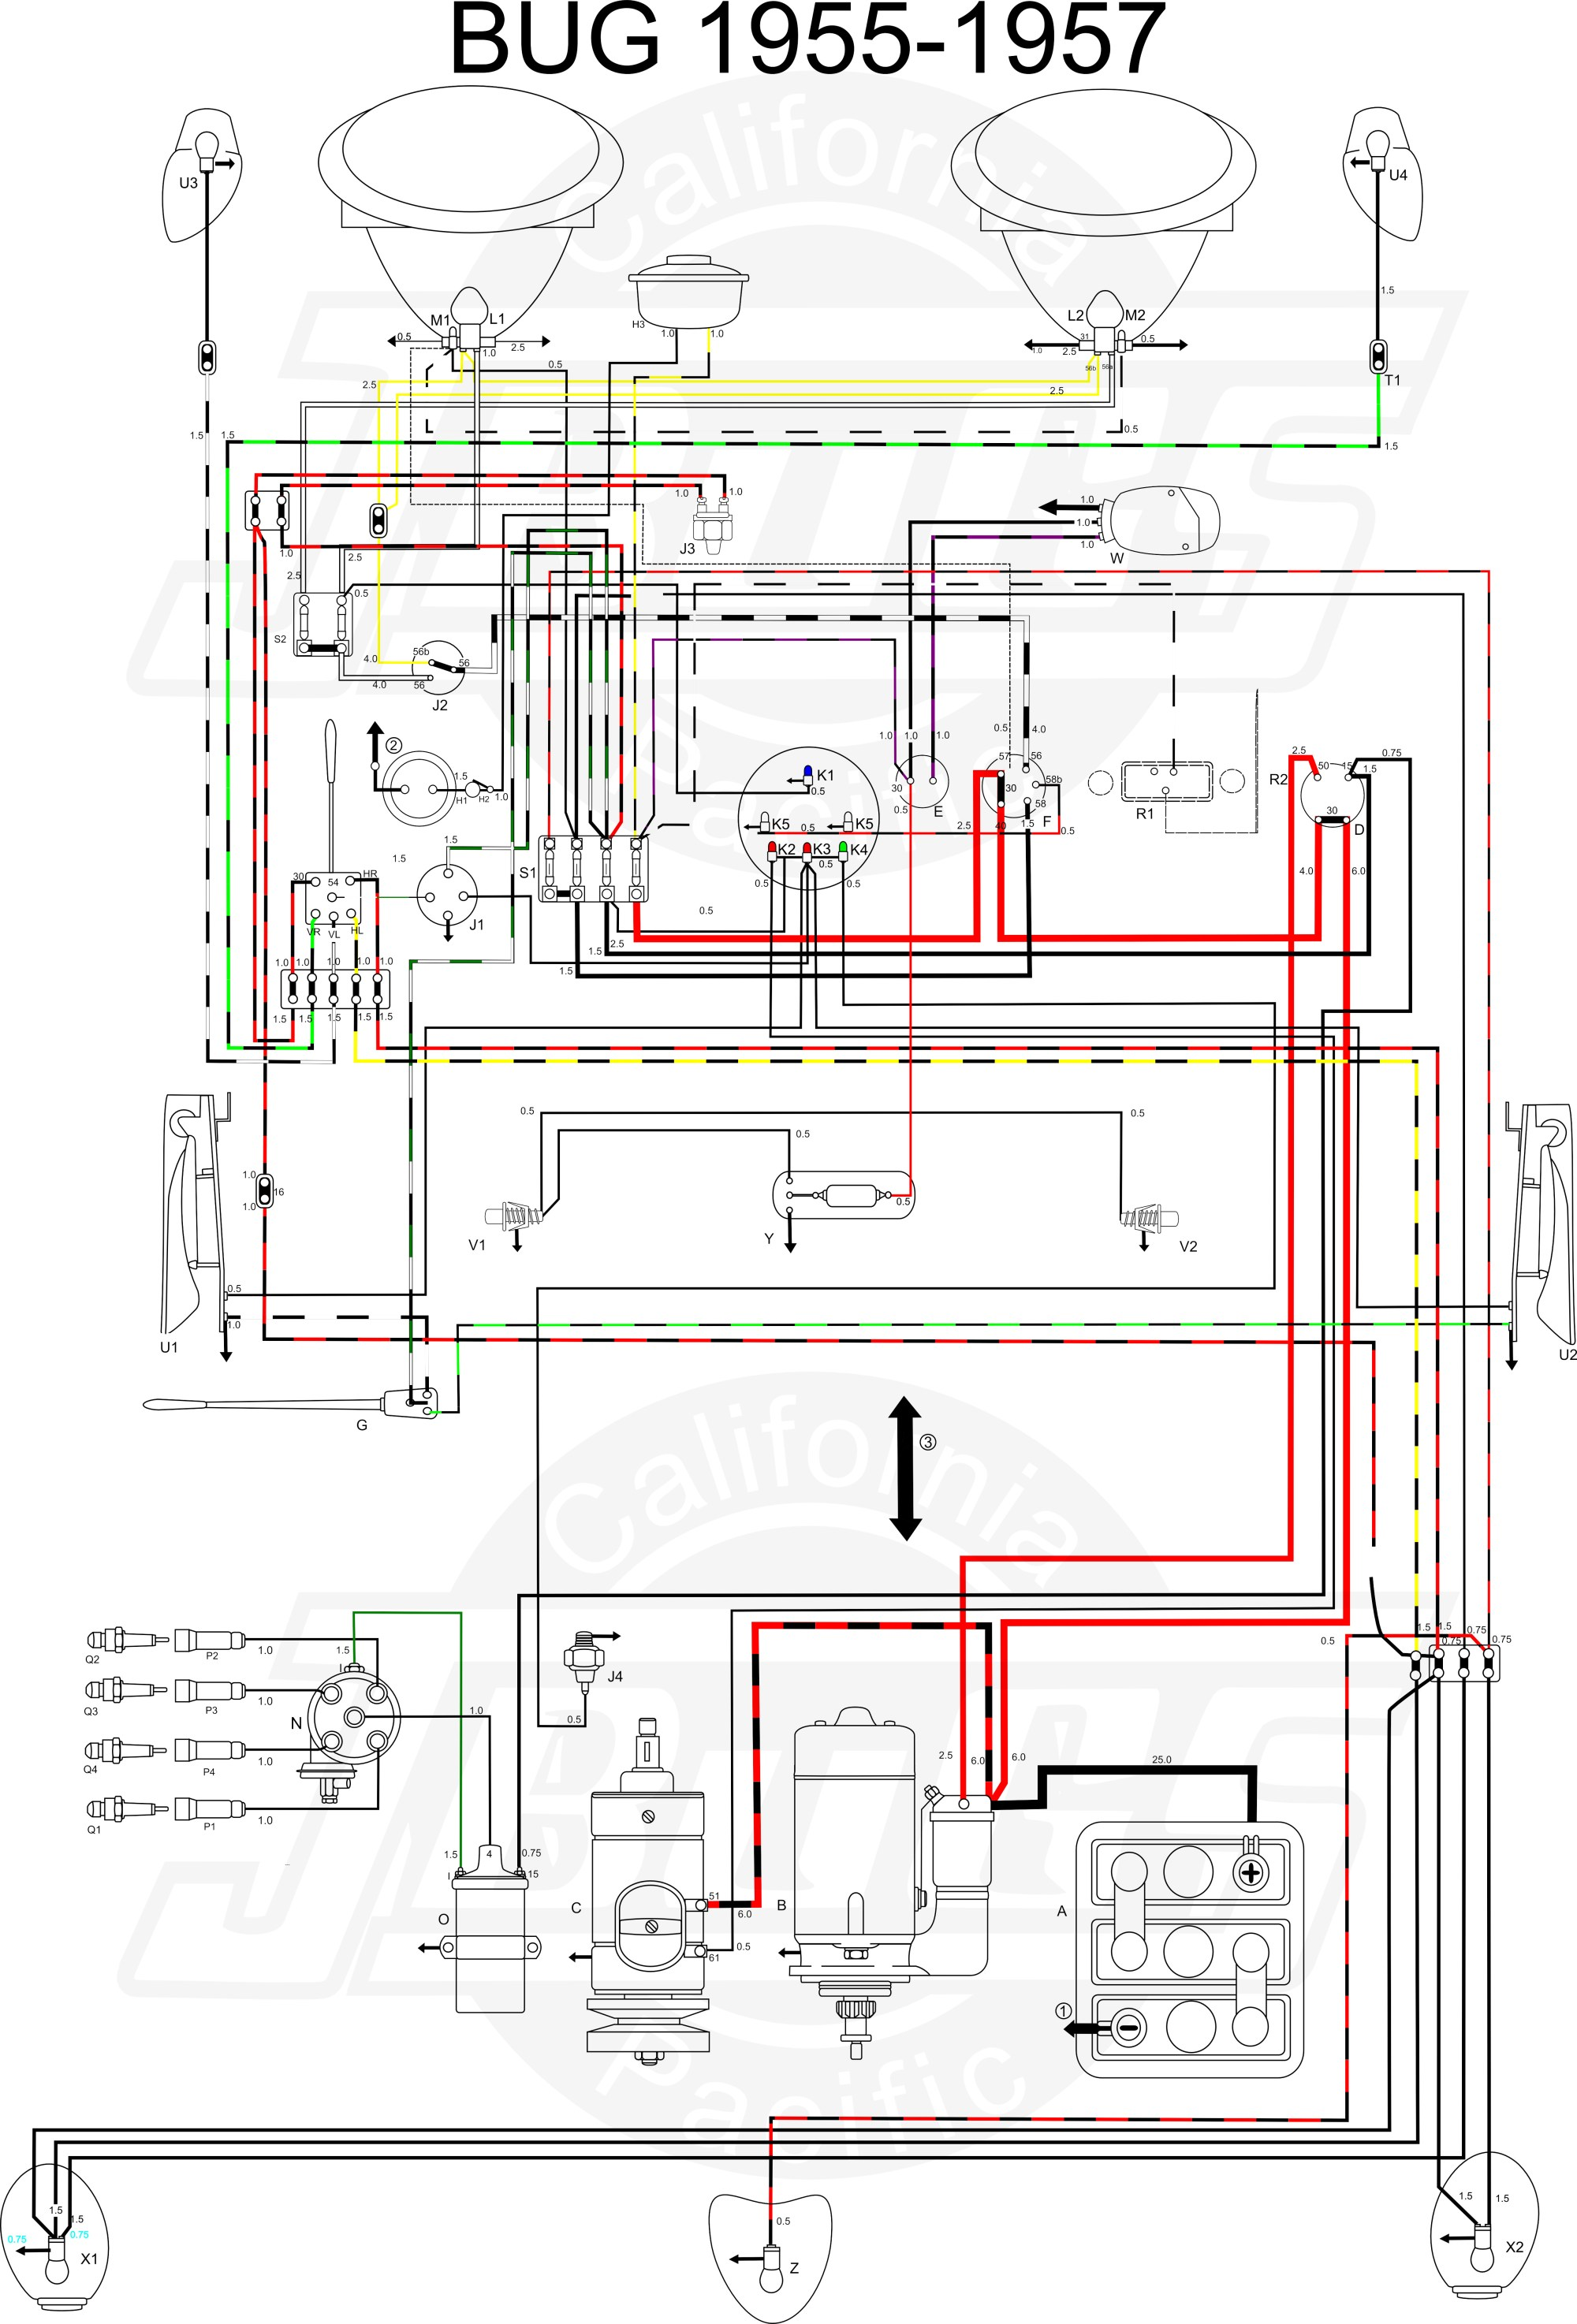 hight resolution of 58 vw beetle fuse box wiring diagram 58 vw alternator wiring wiring diagram post mix 58